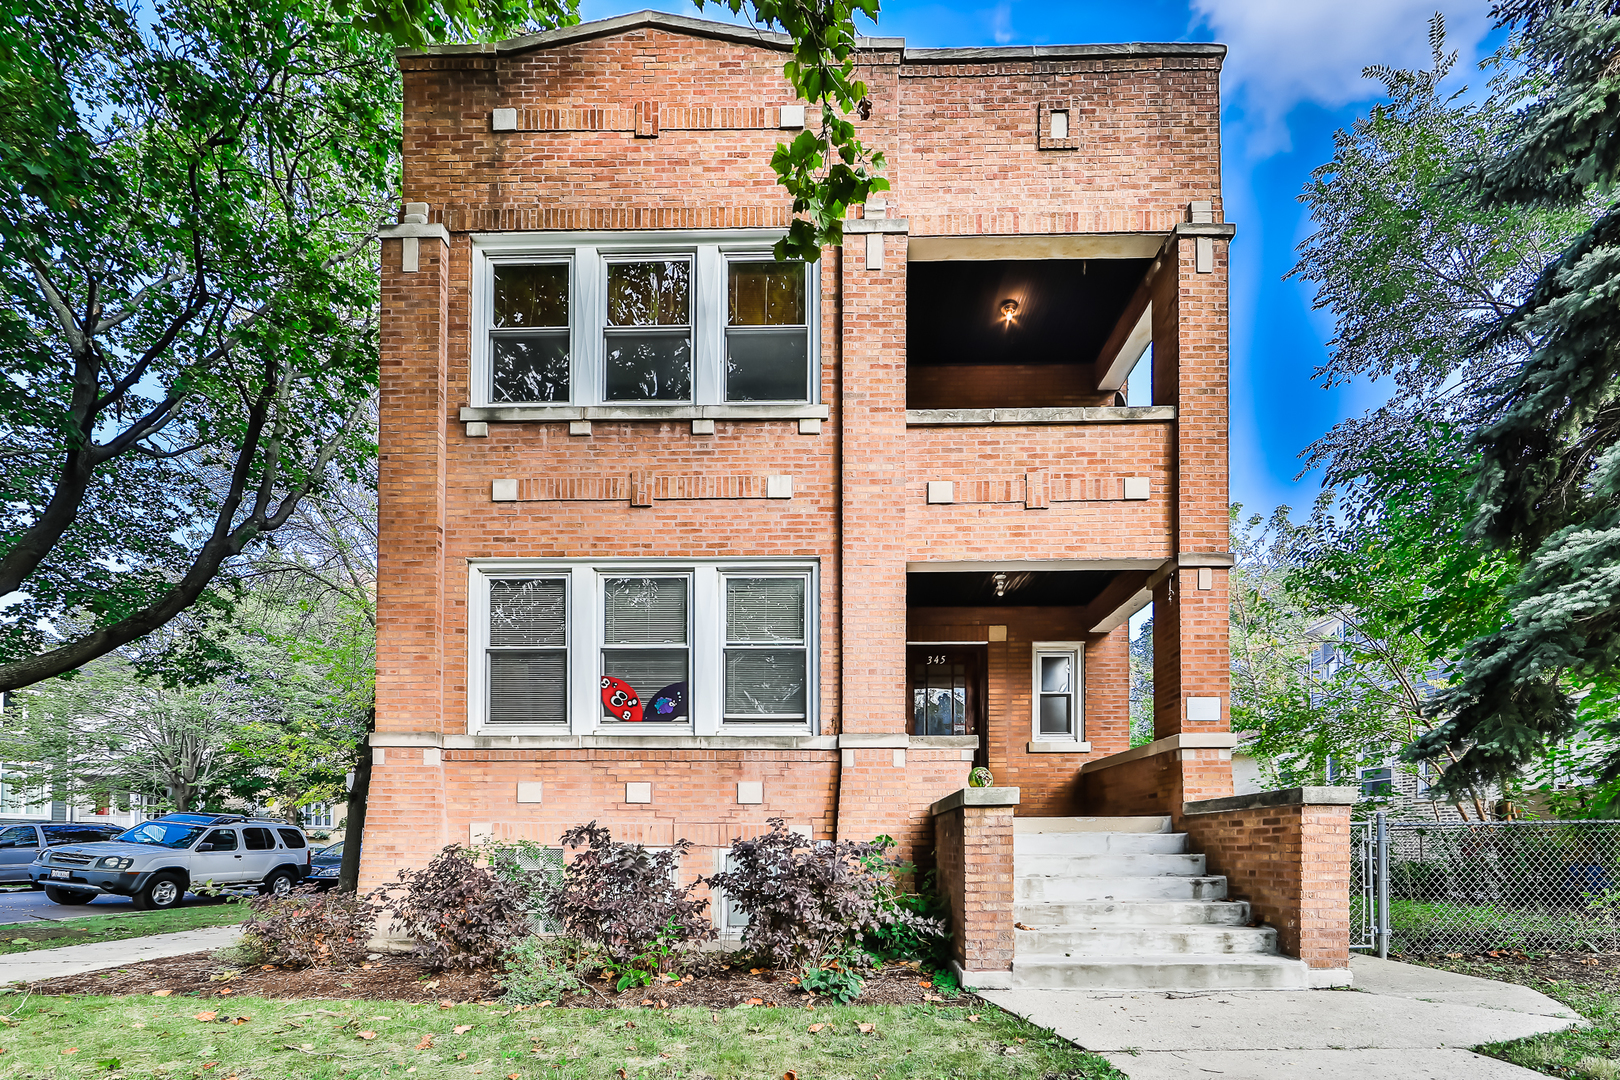 3457 NORTH AVERS AVENUE, CHICAGO, IL 60618